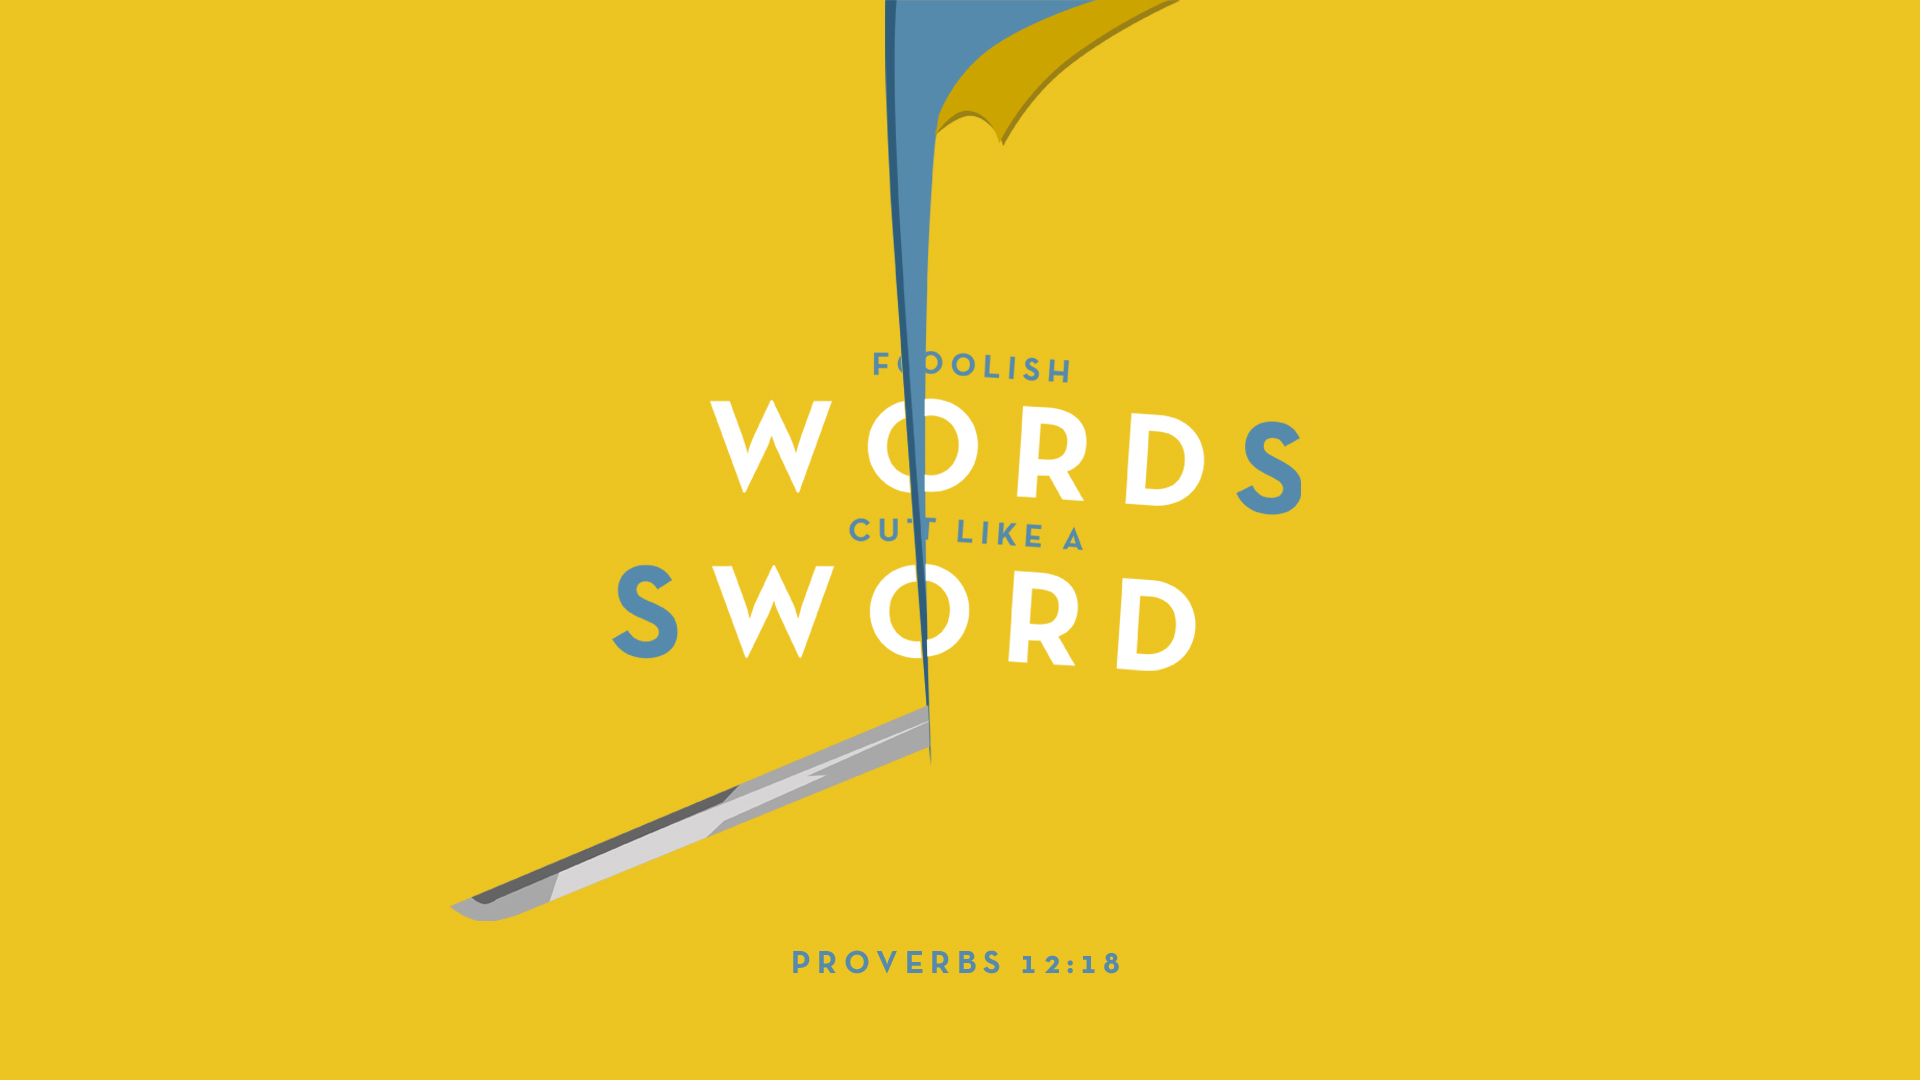 James: Foolish Words Cut Like a Sword